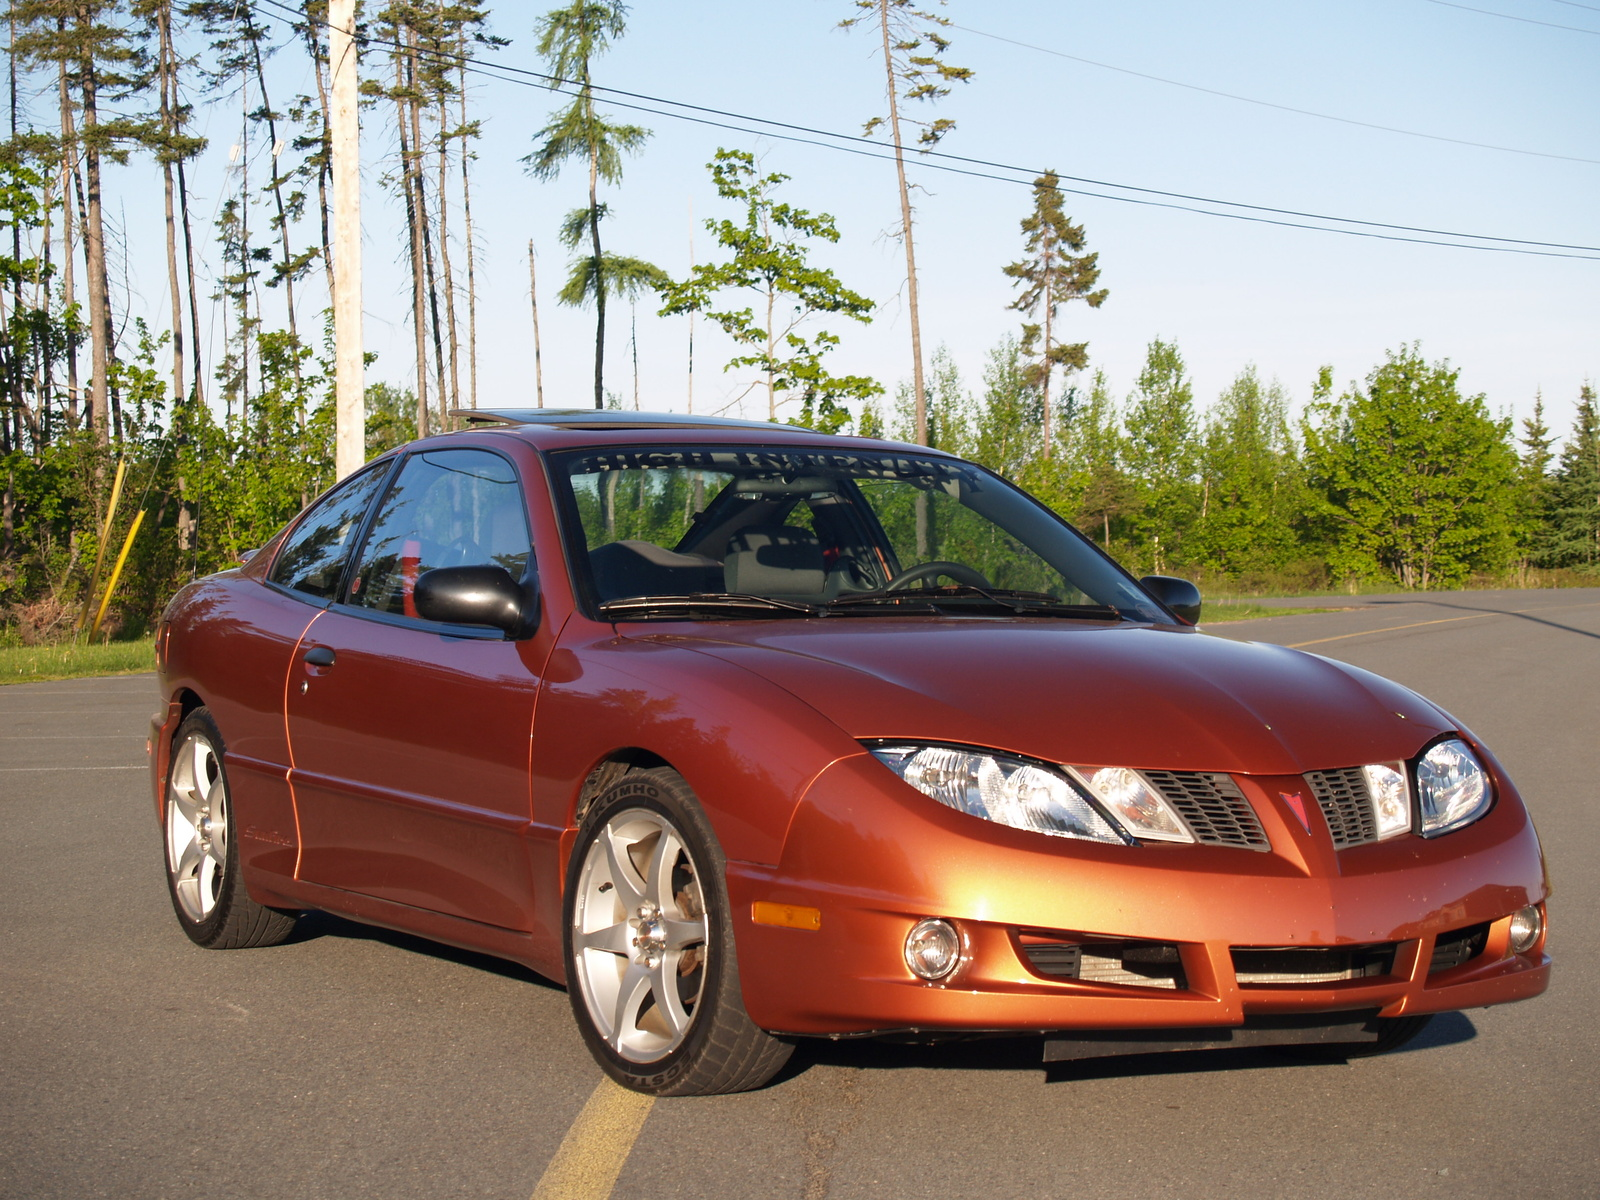 Picture of 2004 Pontiac Sunfire Base